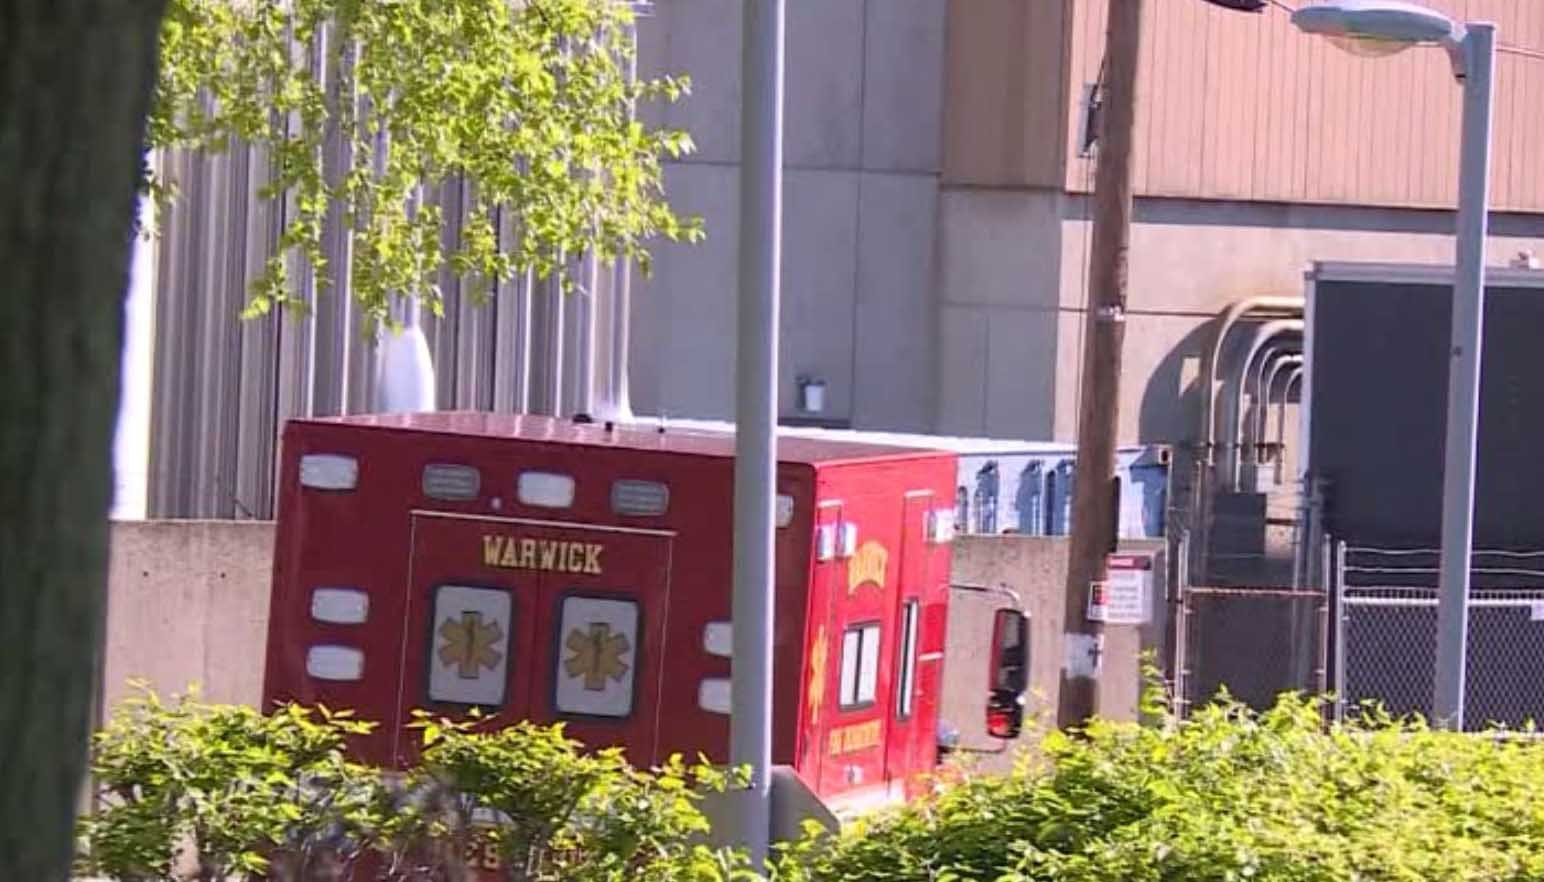 A Rhode Island man is accused of stealing an unattended ambulance. (Source: WPRI/CNN)